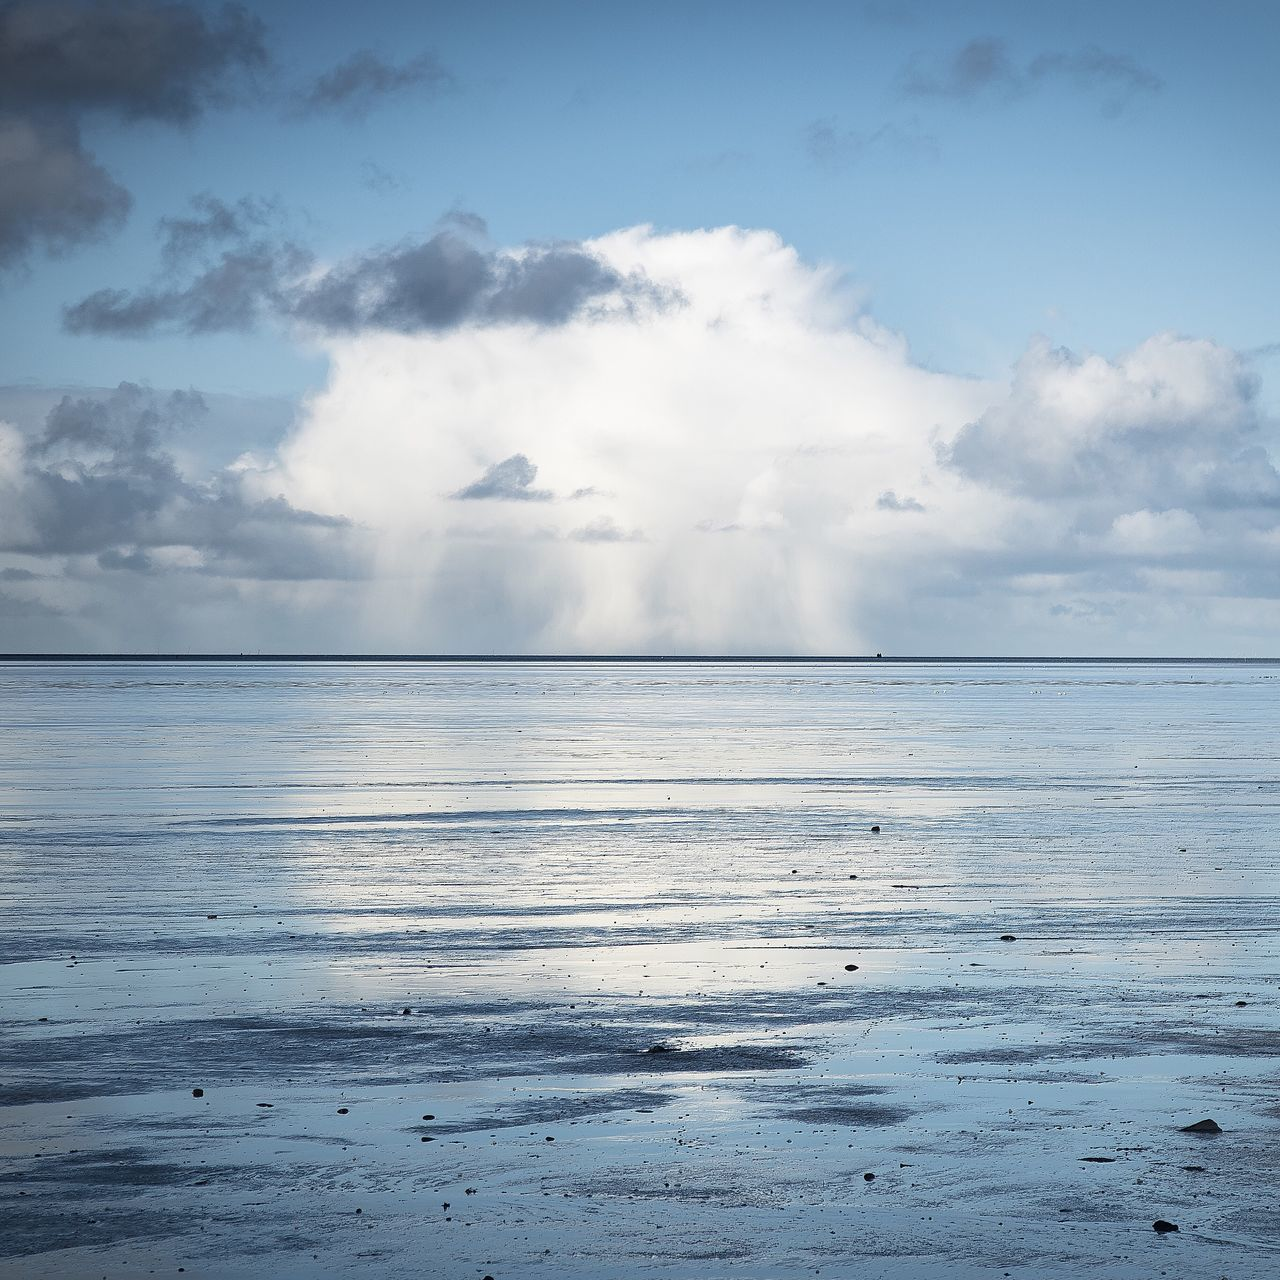 Netherlands Photography Wieringen Holland Wadden Sea Waddenzee Showcase March Cloudsandsky Cloudscape Sea And Sky Sea Seascape Sea View Wintertime Winter Photooftheday Photo Landscape Landscape_photography Blue Sky Blue Bluesky Josienvangeffen